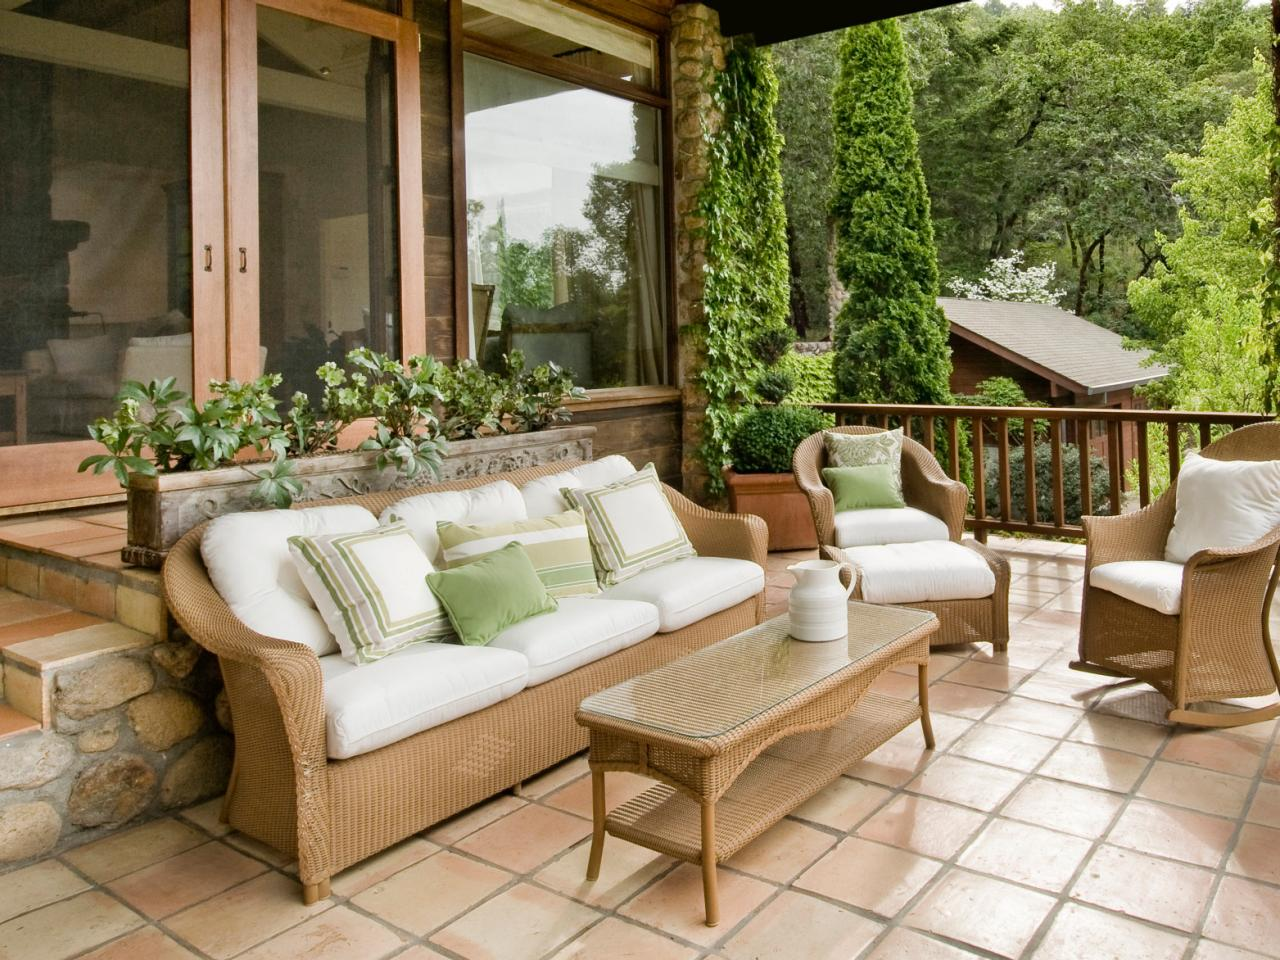 Patio Tiles | HGTV